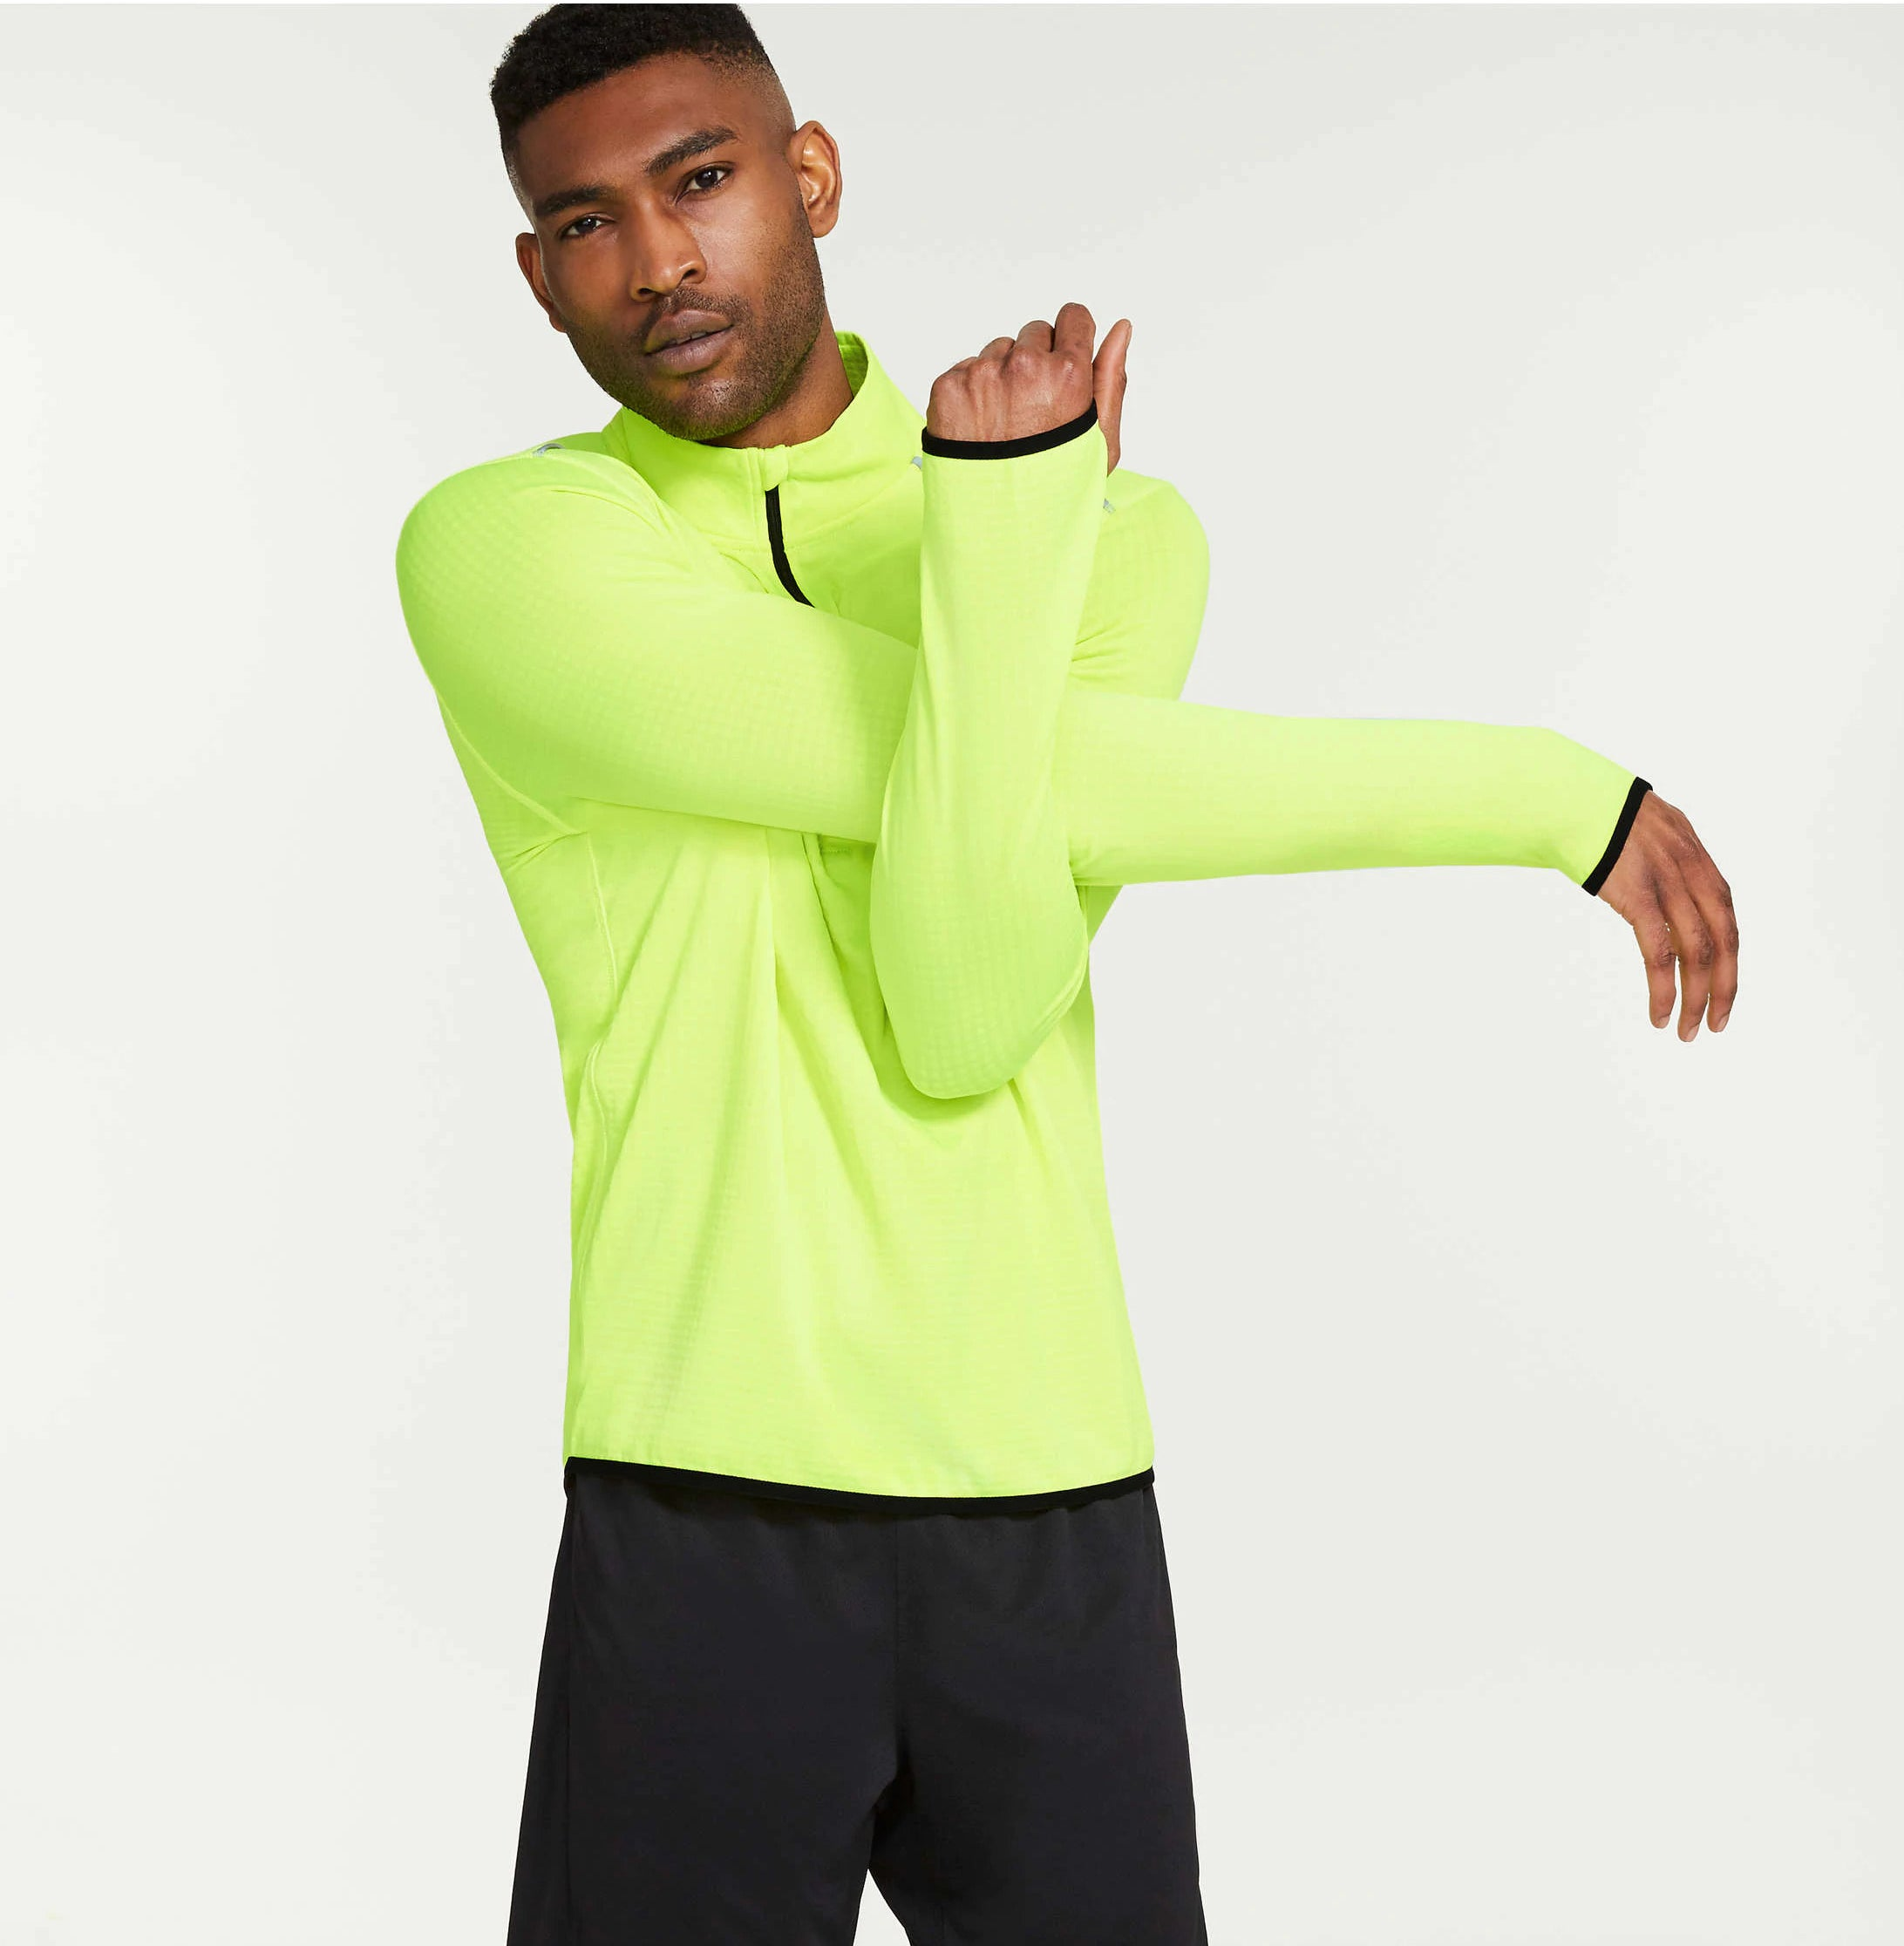 A person wearing a long sleeved neon workout top and shorts